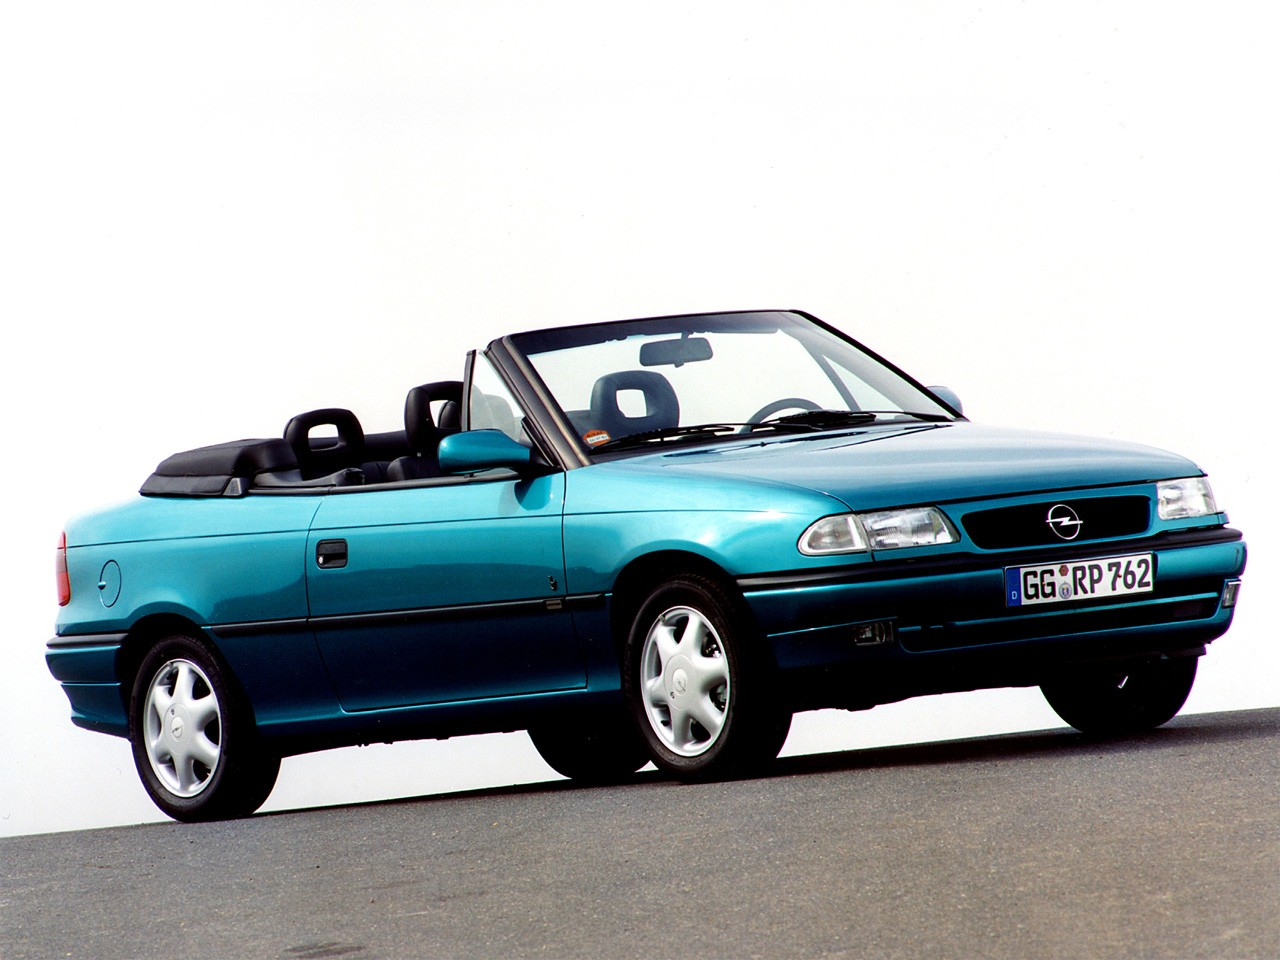 Opel cabriolet photo - 10